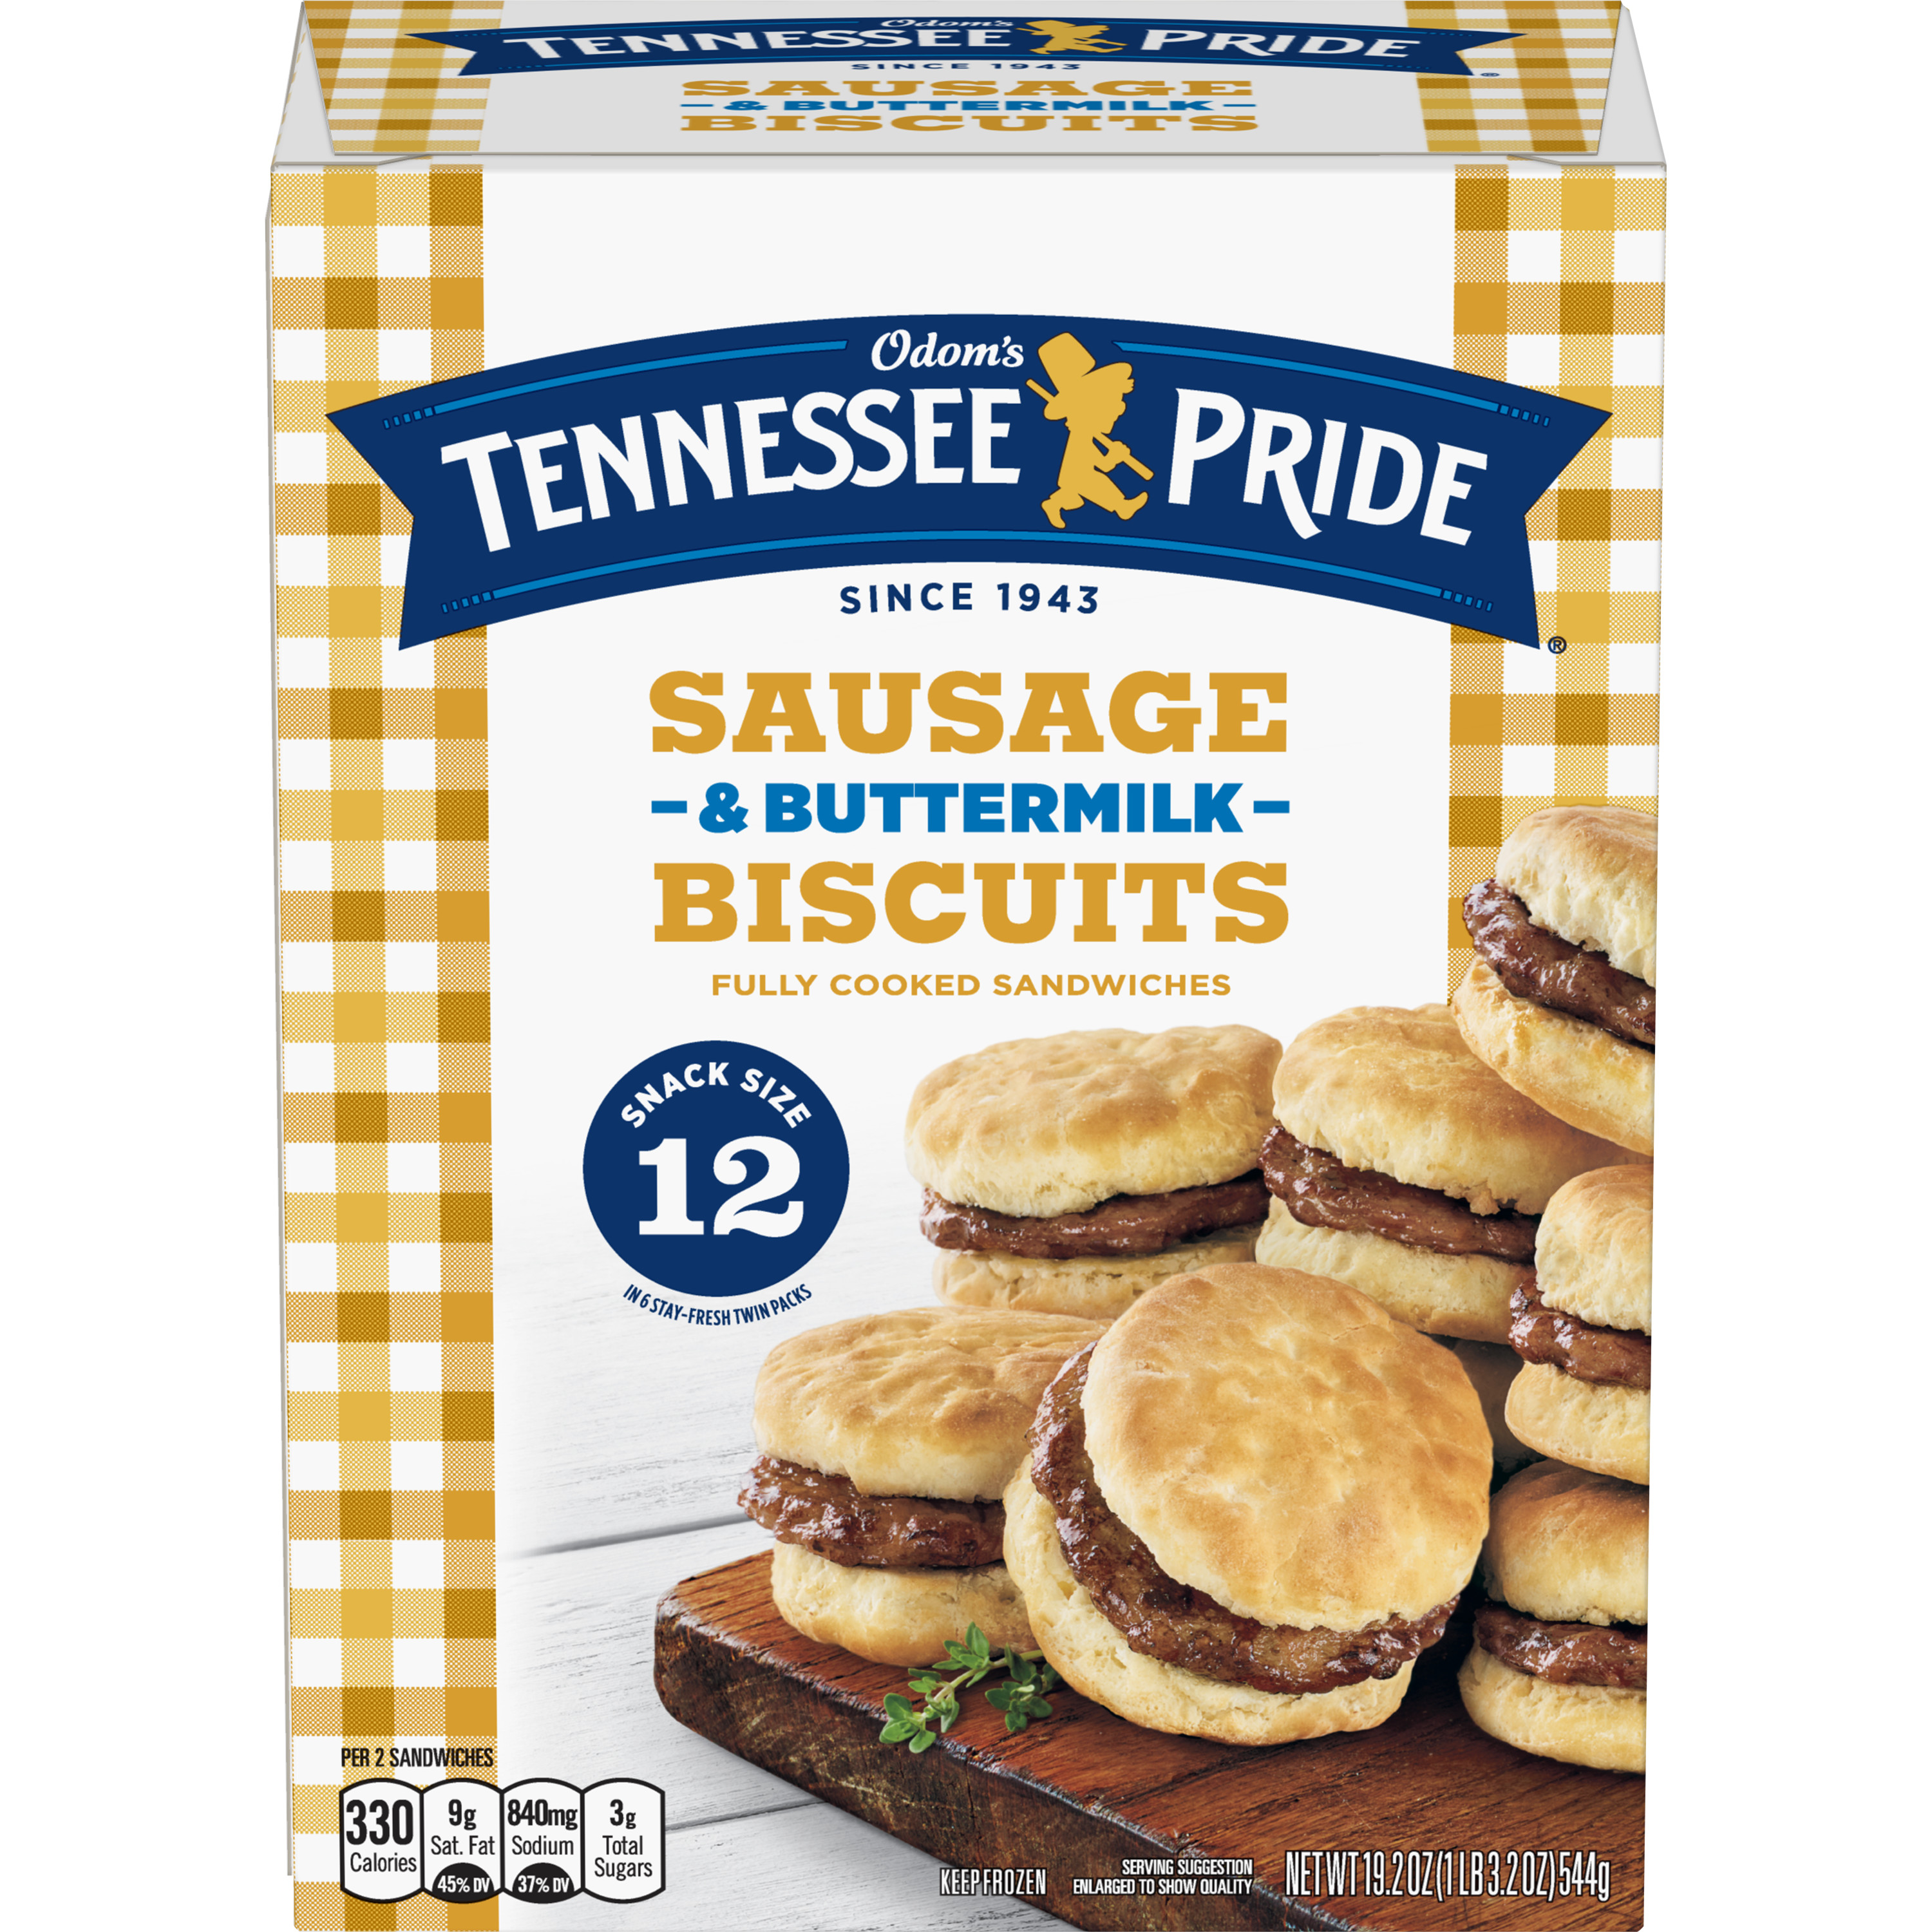 Odom's Tennessee Pride Sausage & Buttermilk Biscuits, 12 Count